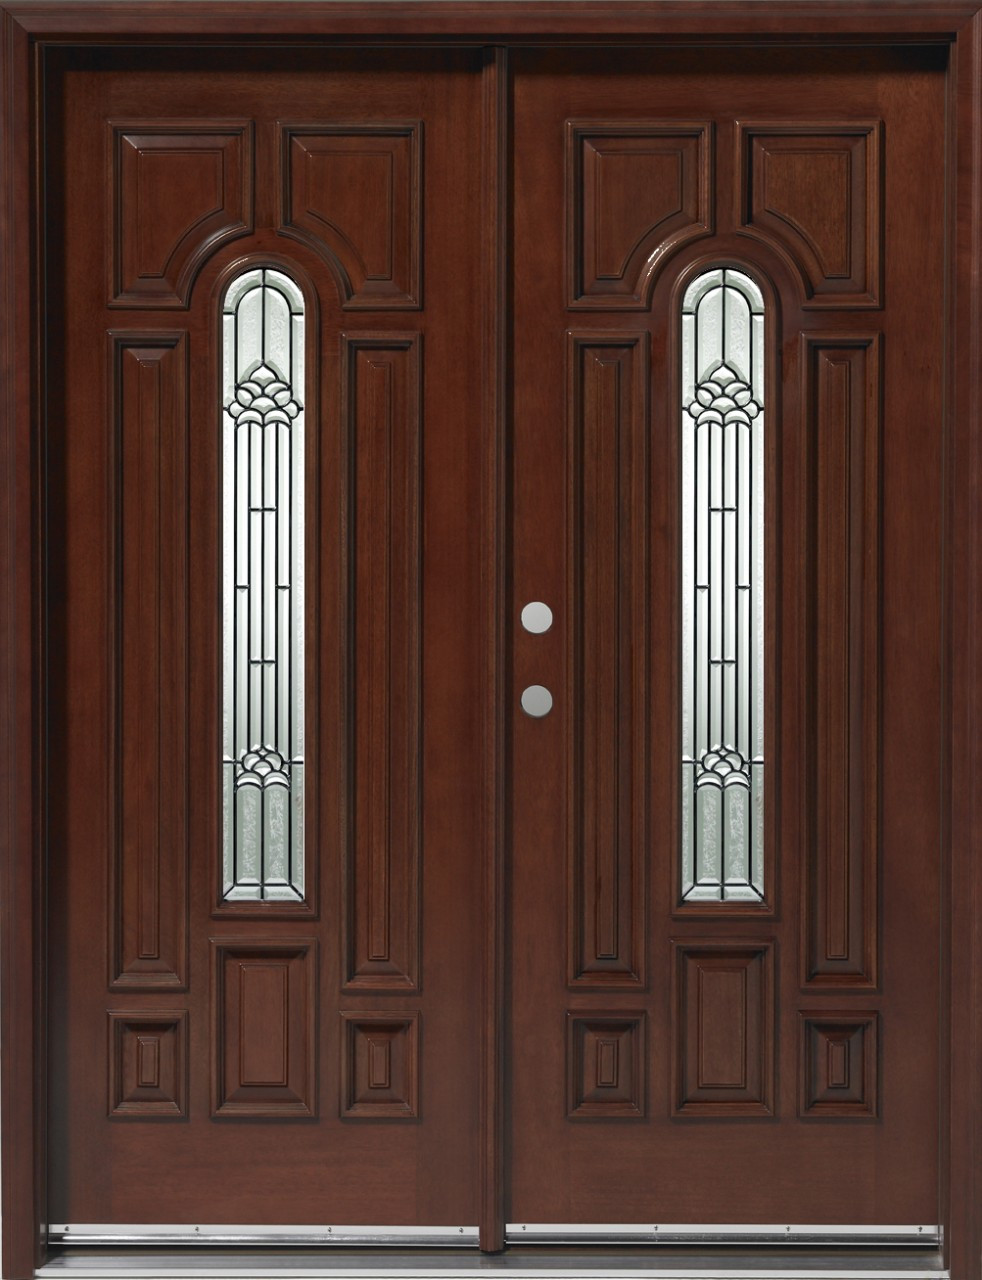 Home entrance door prehung exterior door for Home front entry doors